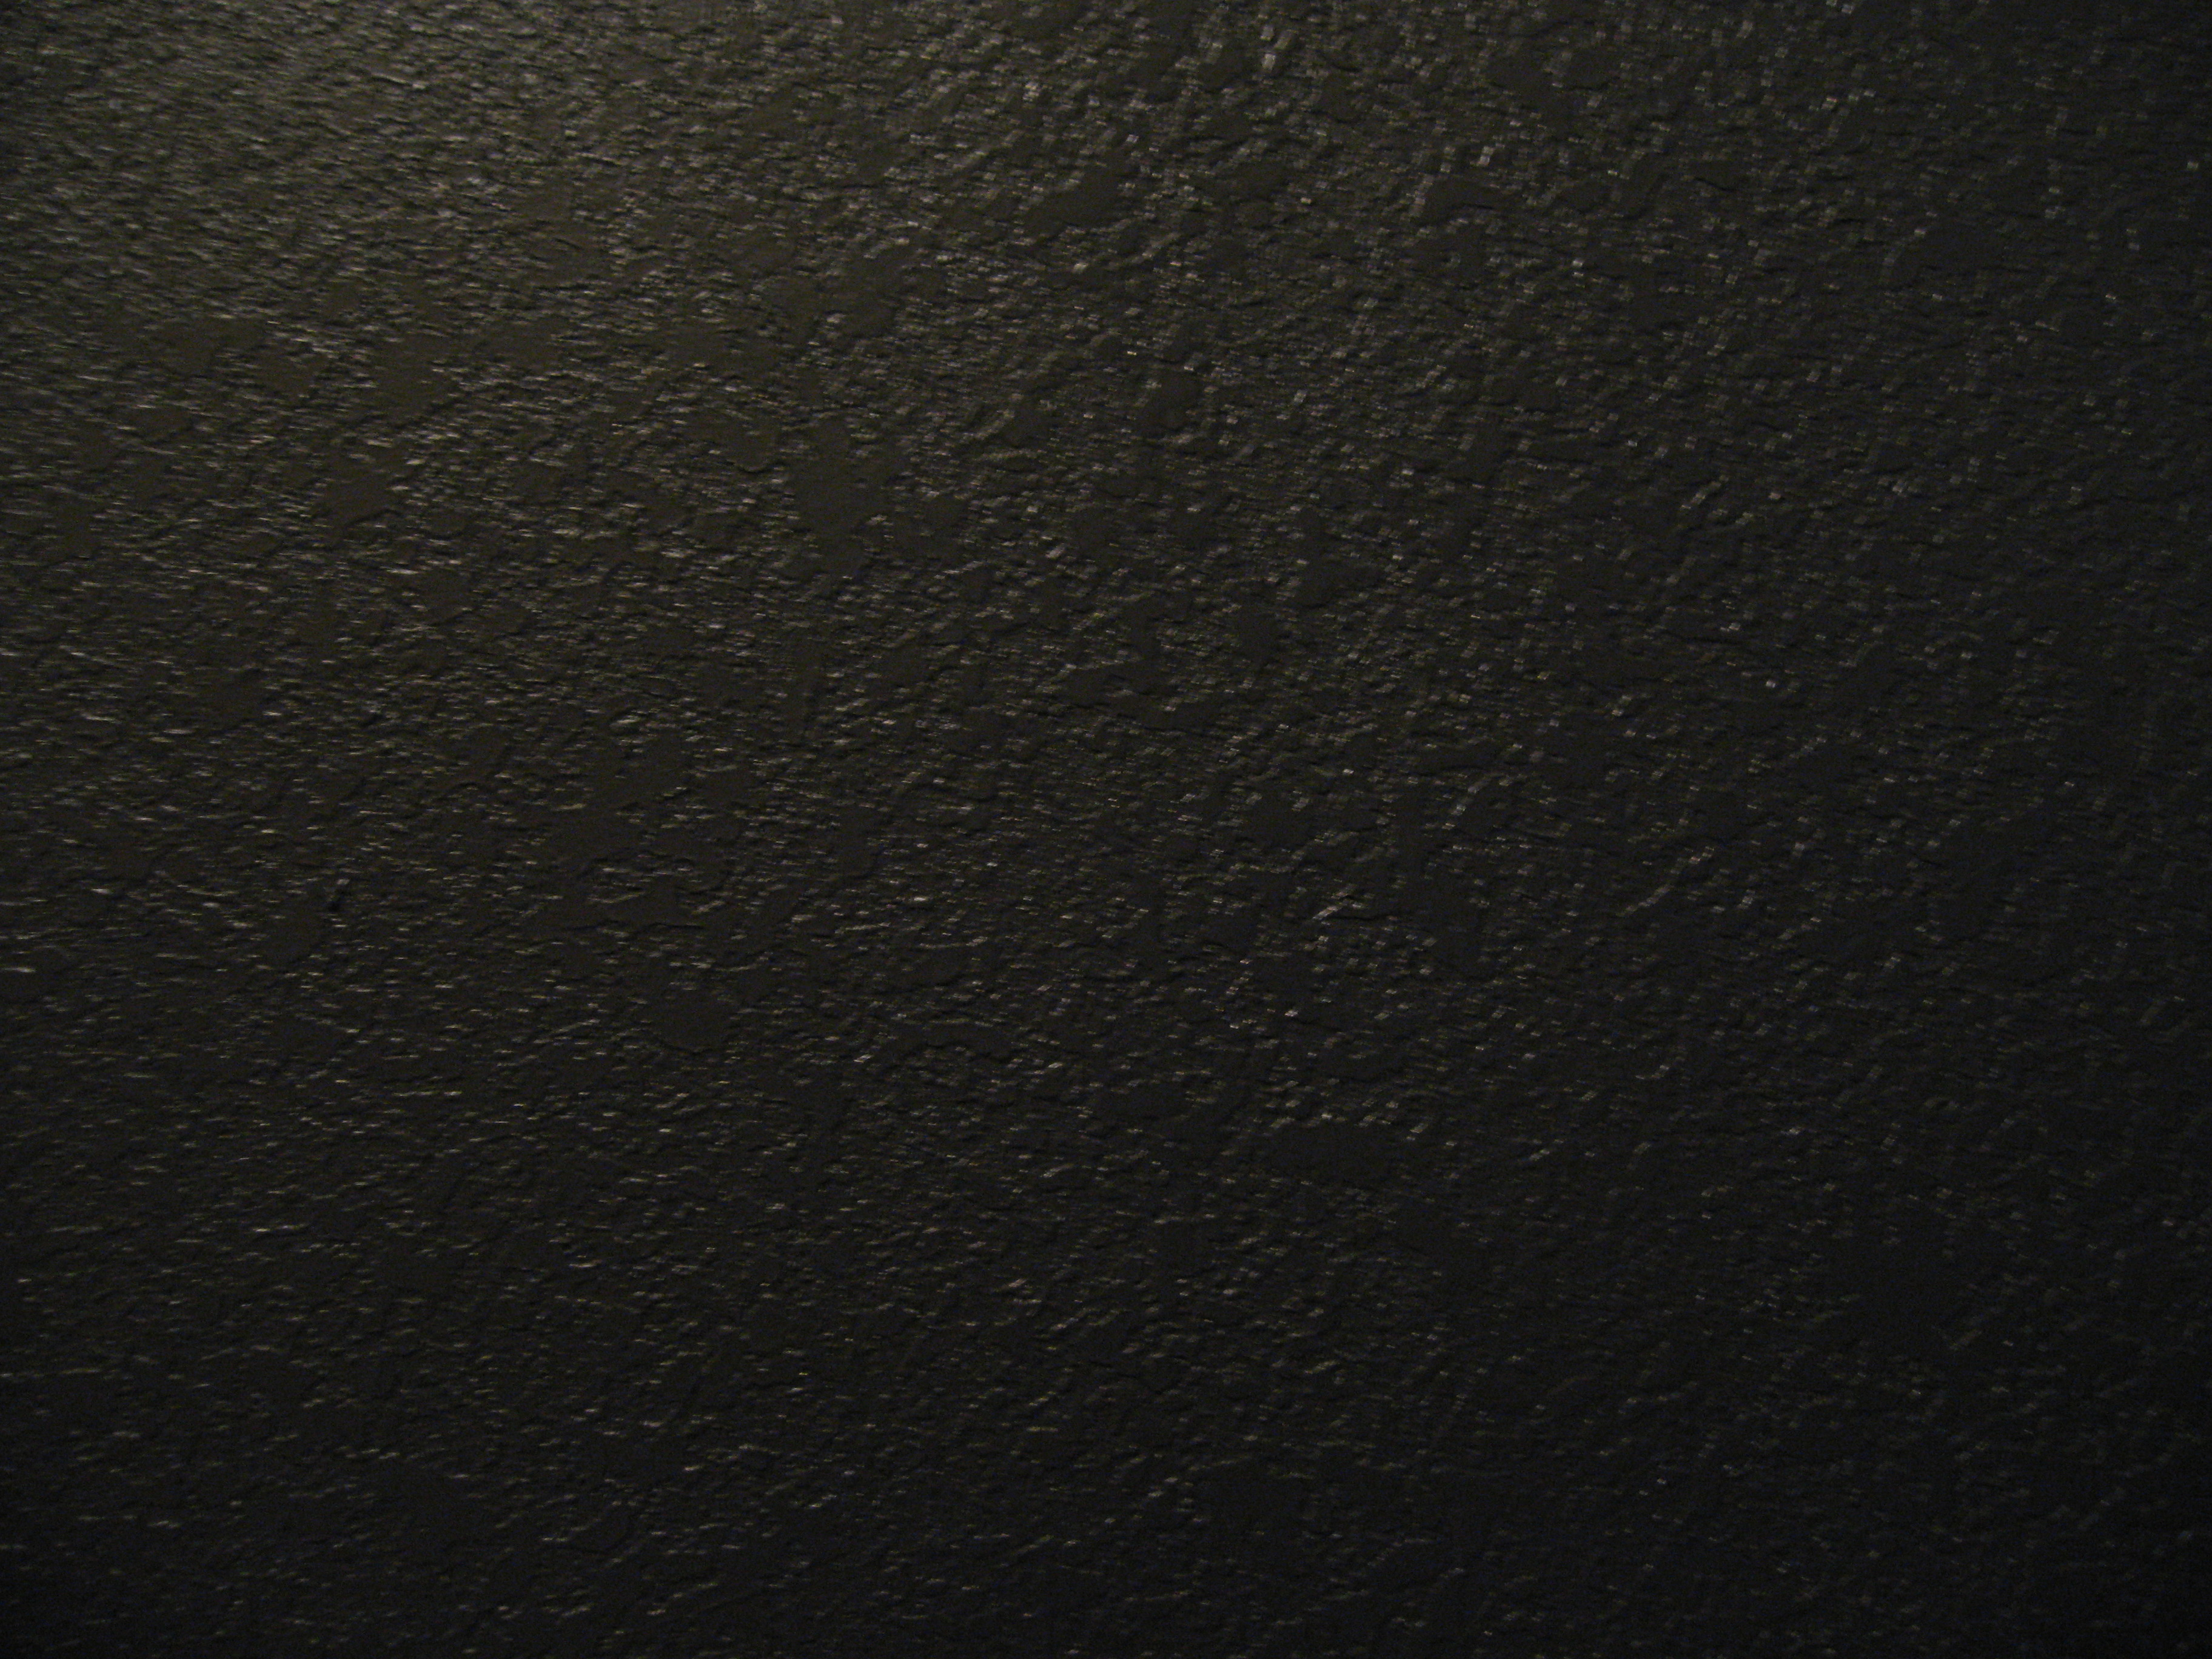 Black Wall Texture And